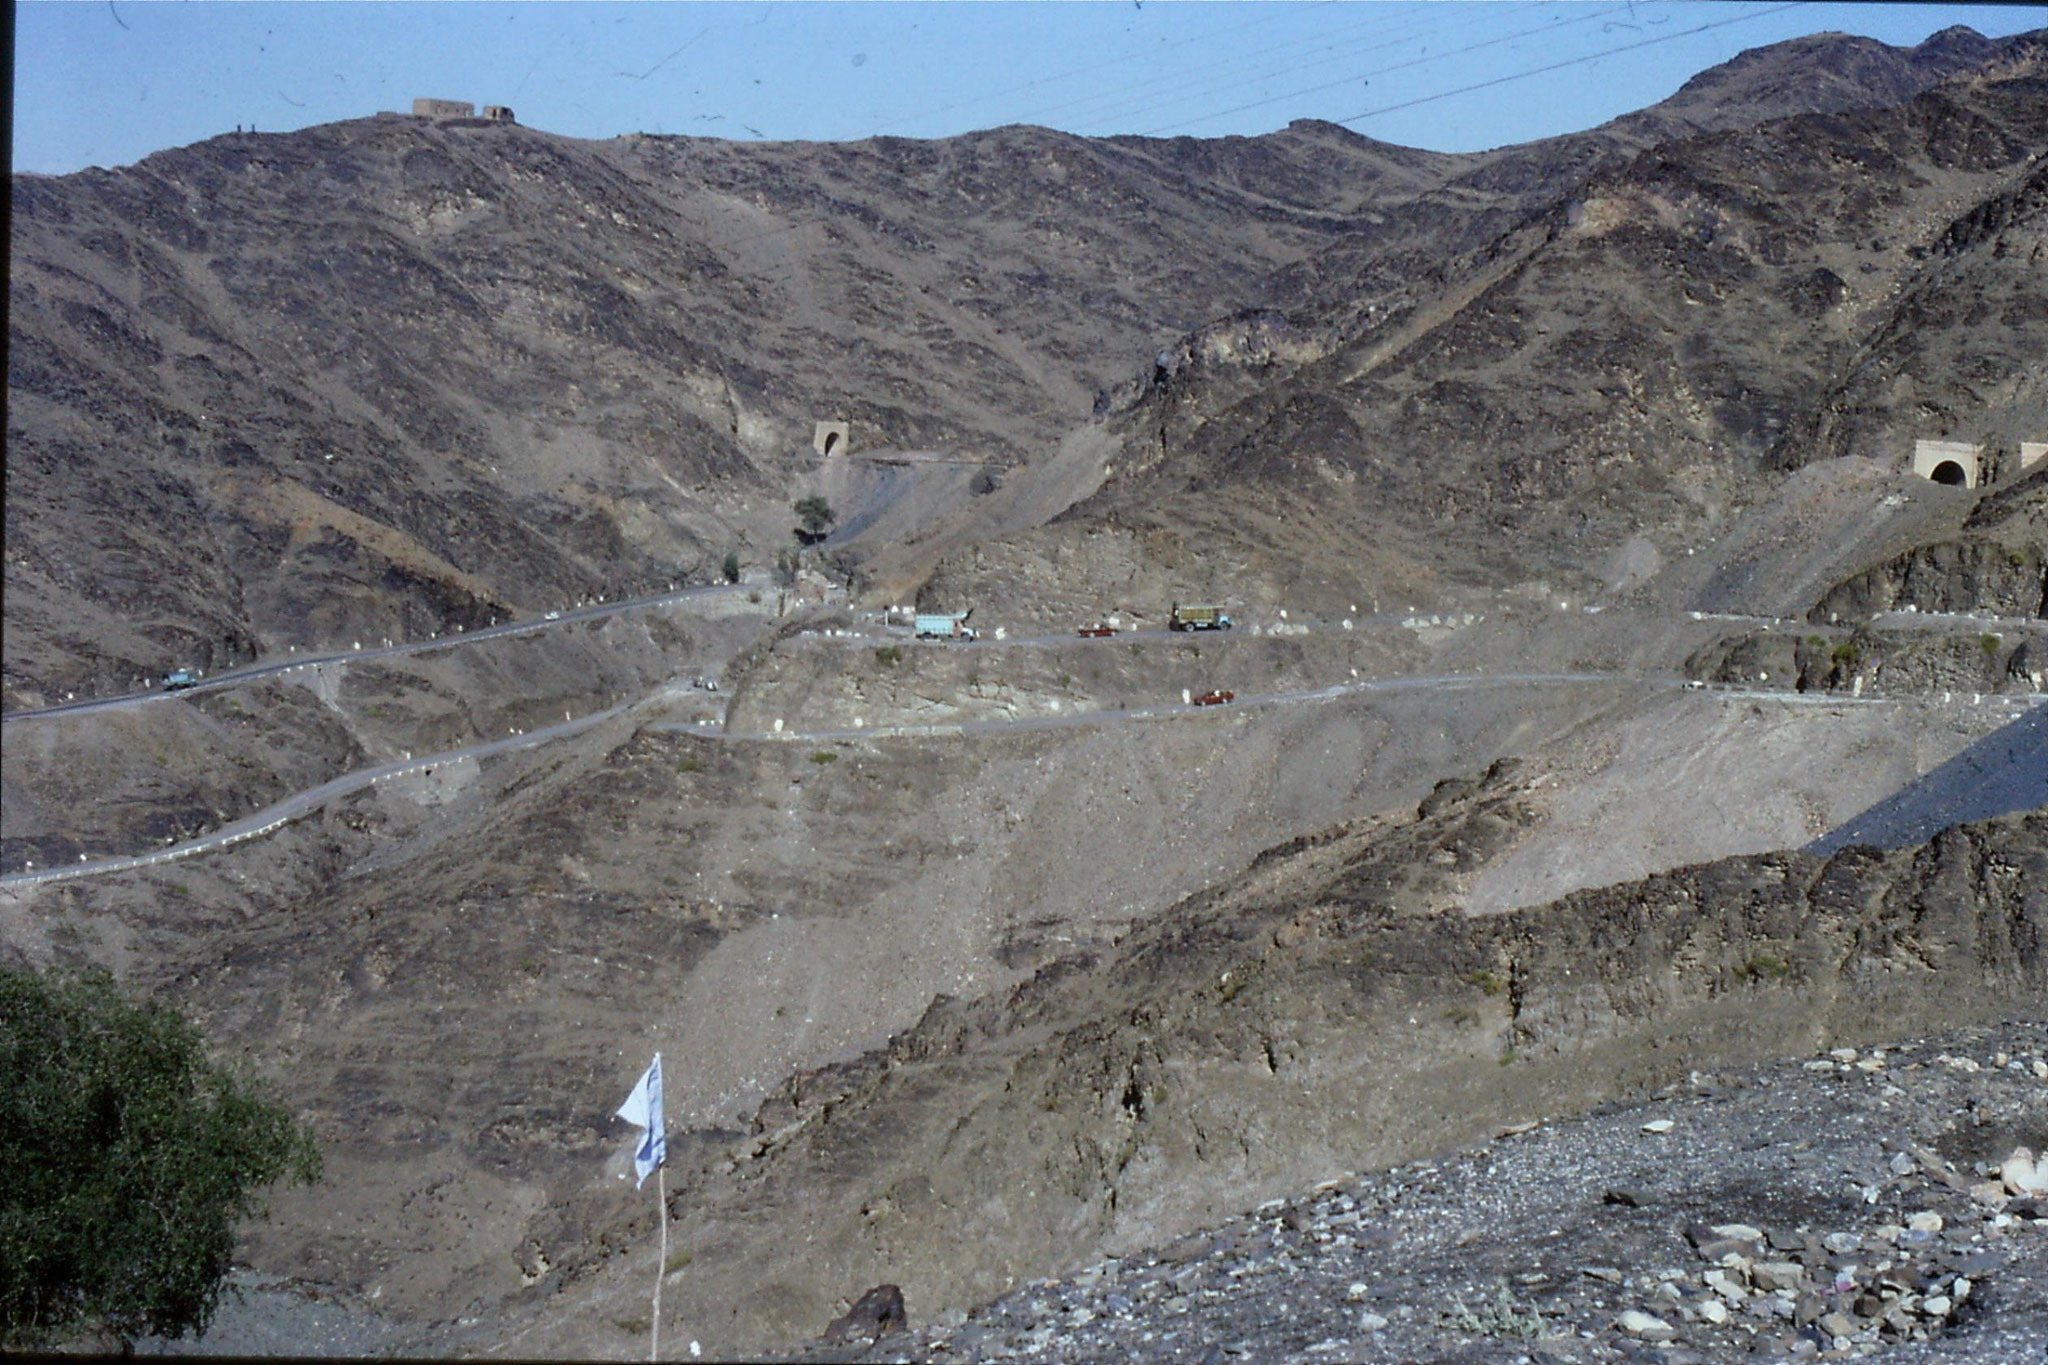 6/11/1989: 19: Khyber Pass road down to Torghum